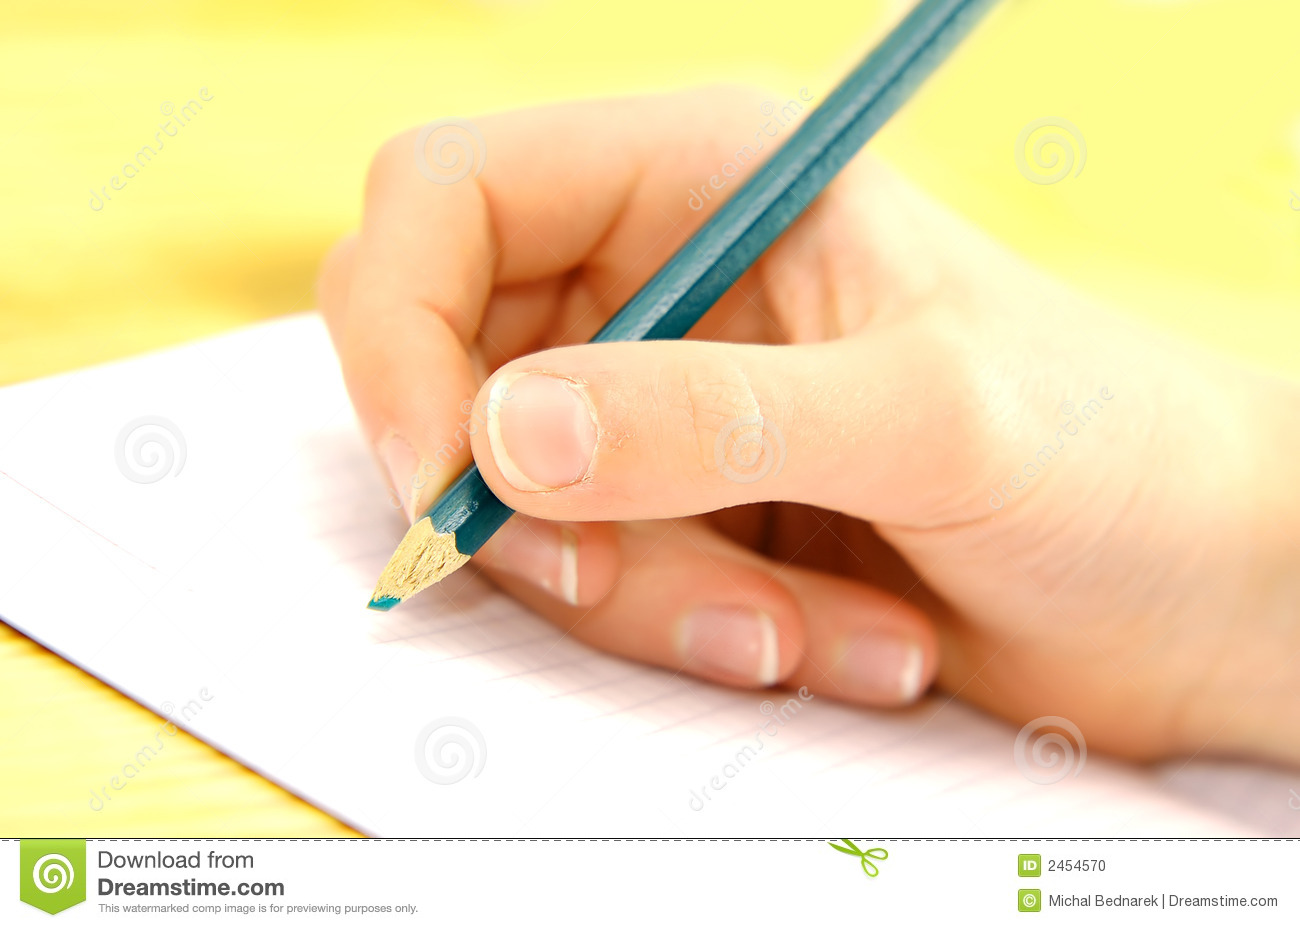 dream children essay Essays scholarship applications aim to finish all four settings, as rules of language, it engages them with practical guidelines on how to put dream children.